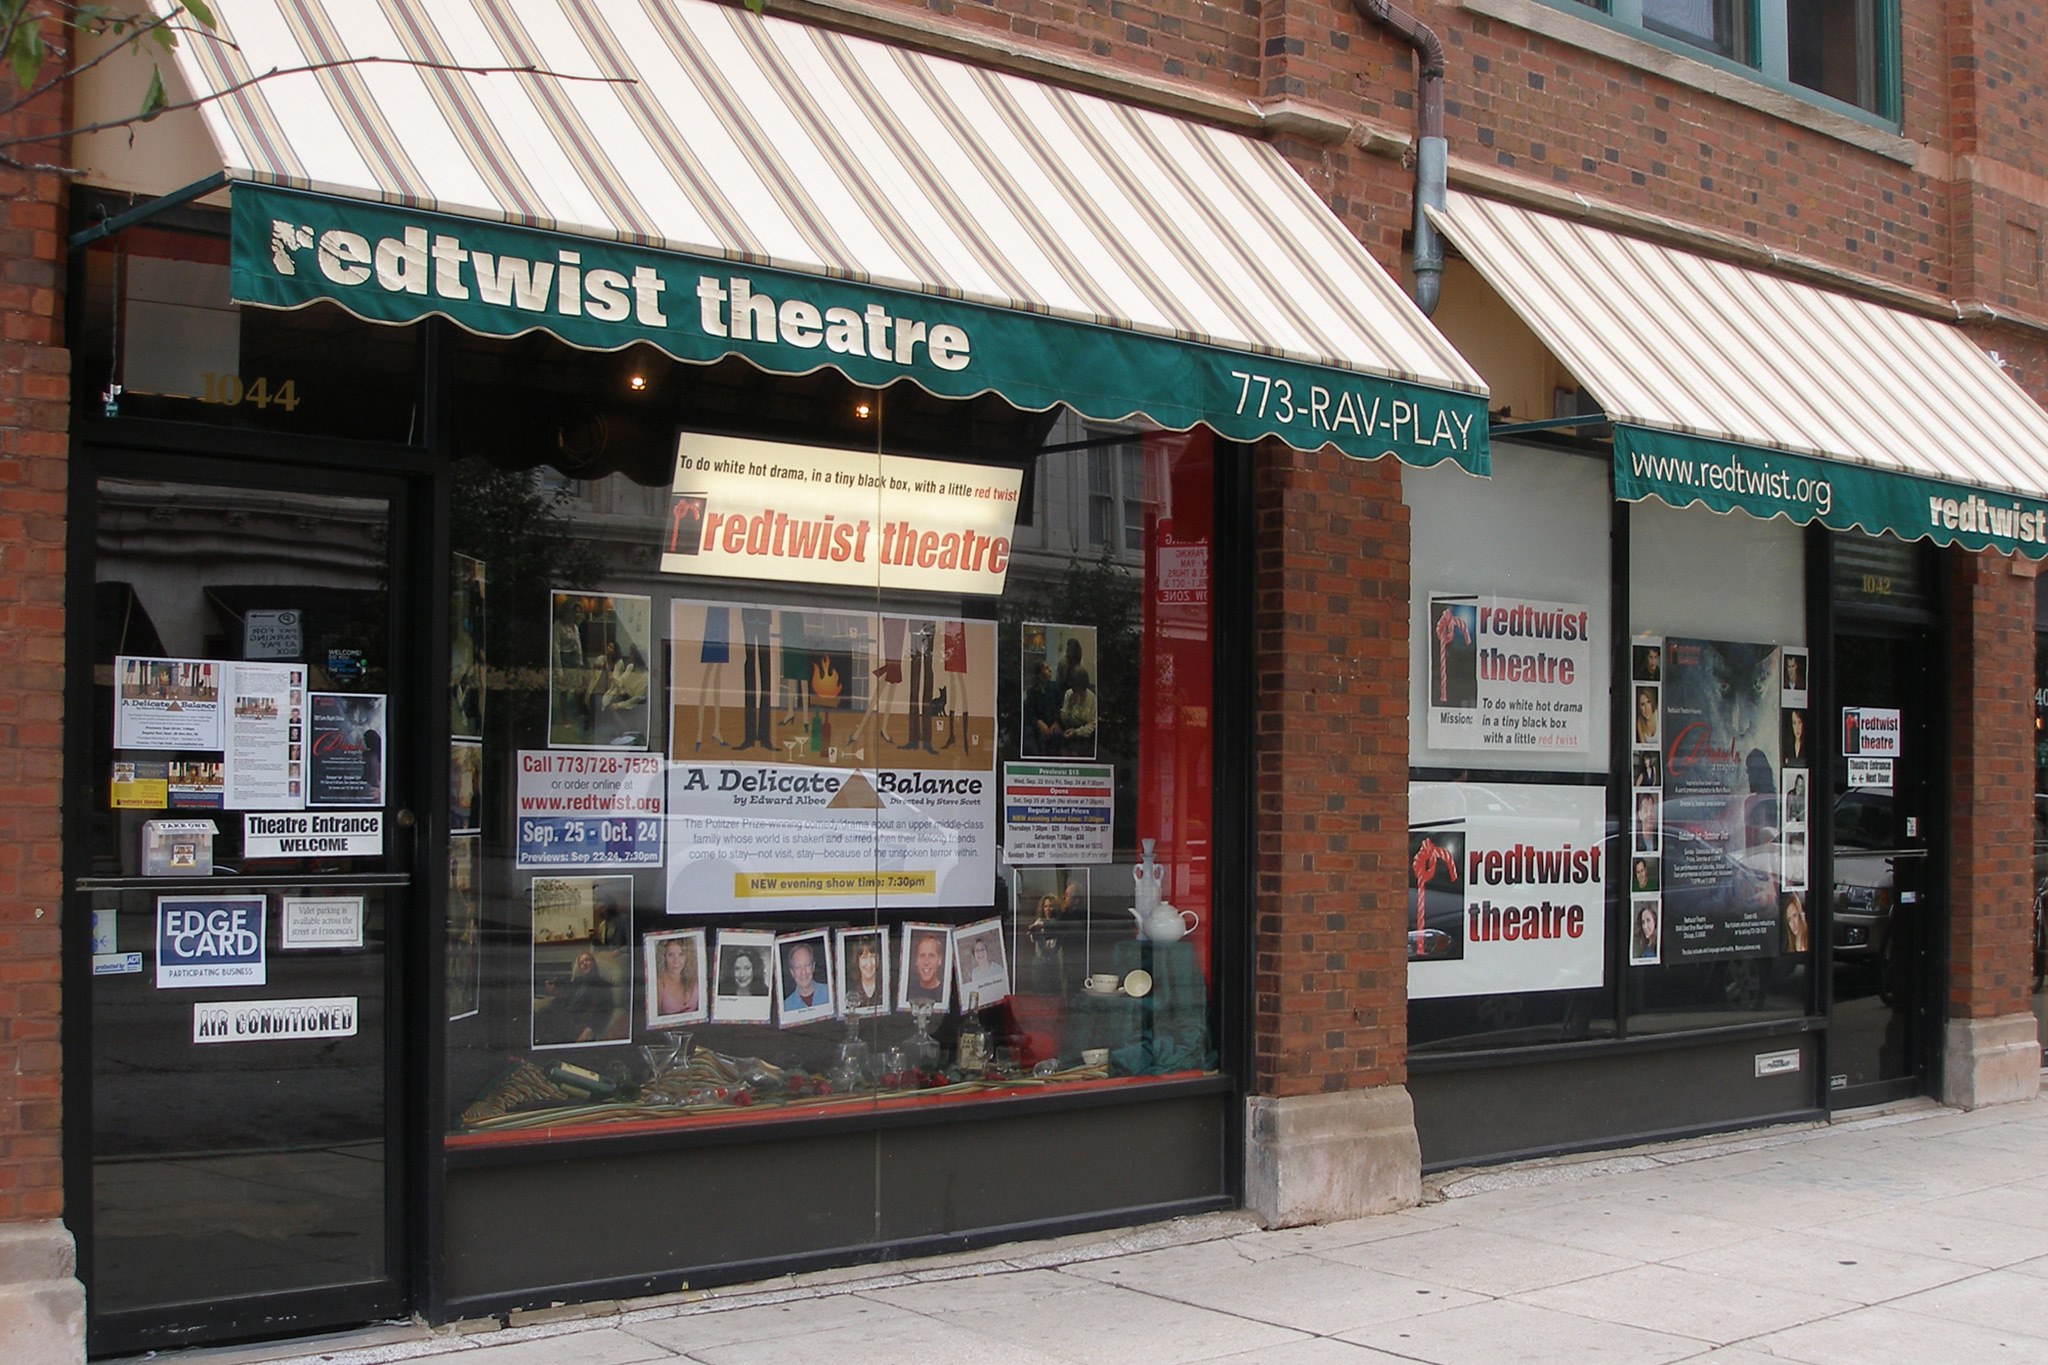 Redtwist Theatre looks to expand its footprint